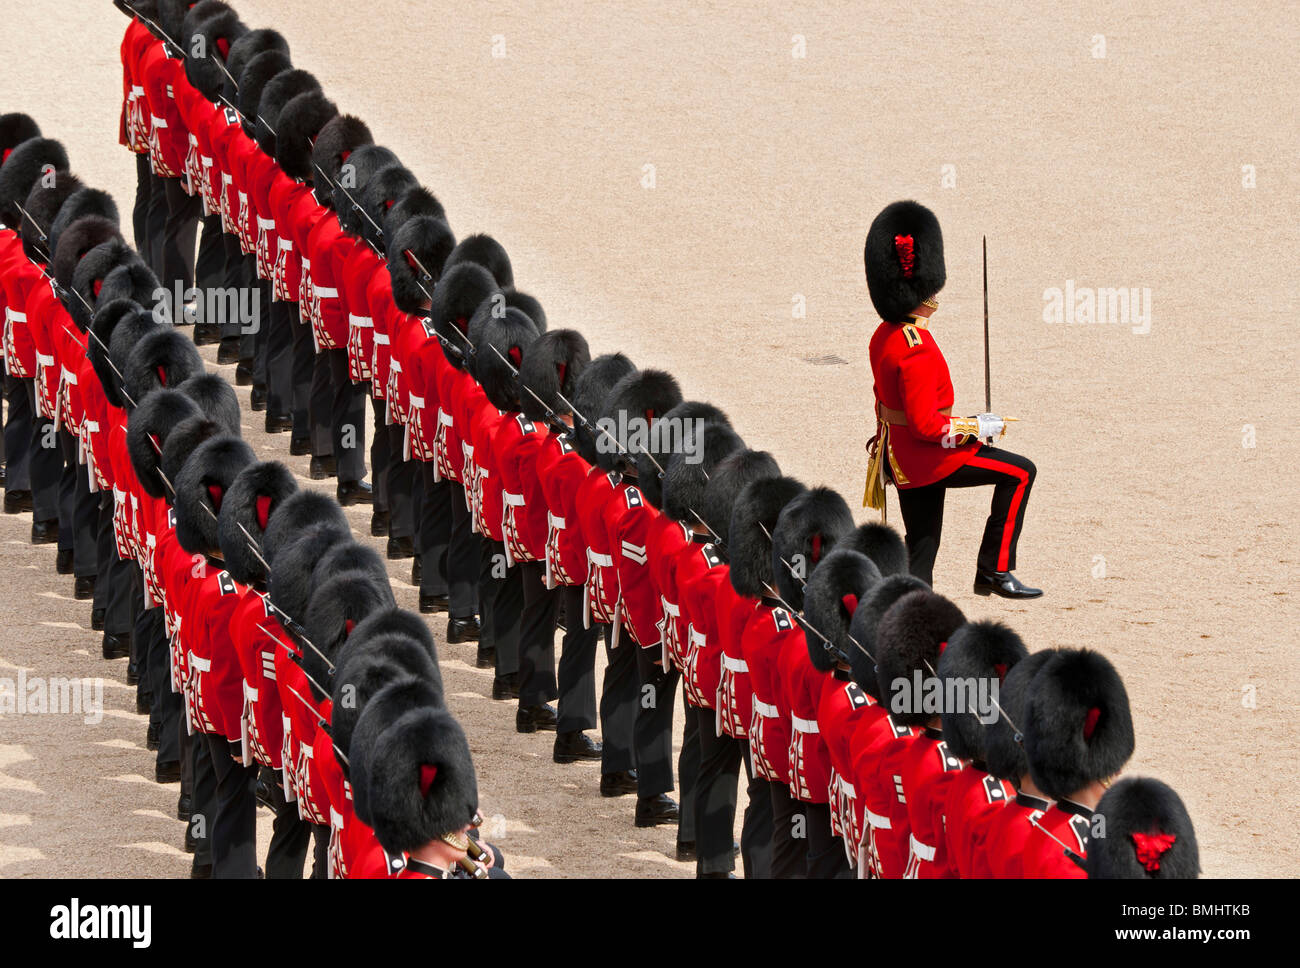 The Queen's Birthday Parade, also known as the Trooping of the Colour, held annually at Horse Guards Whitehall, Stock Photo